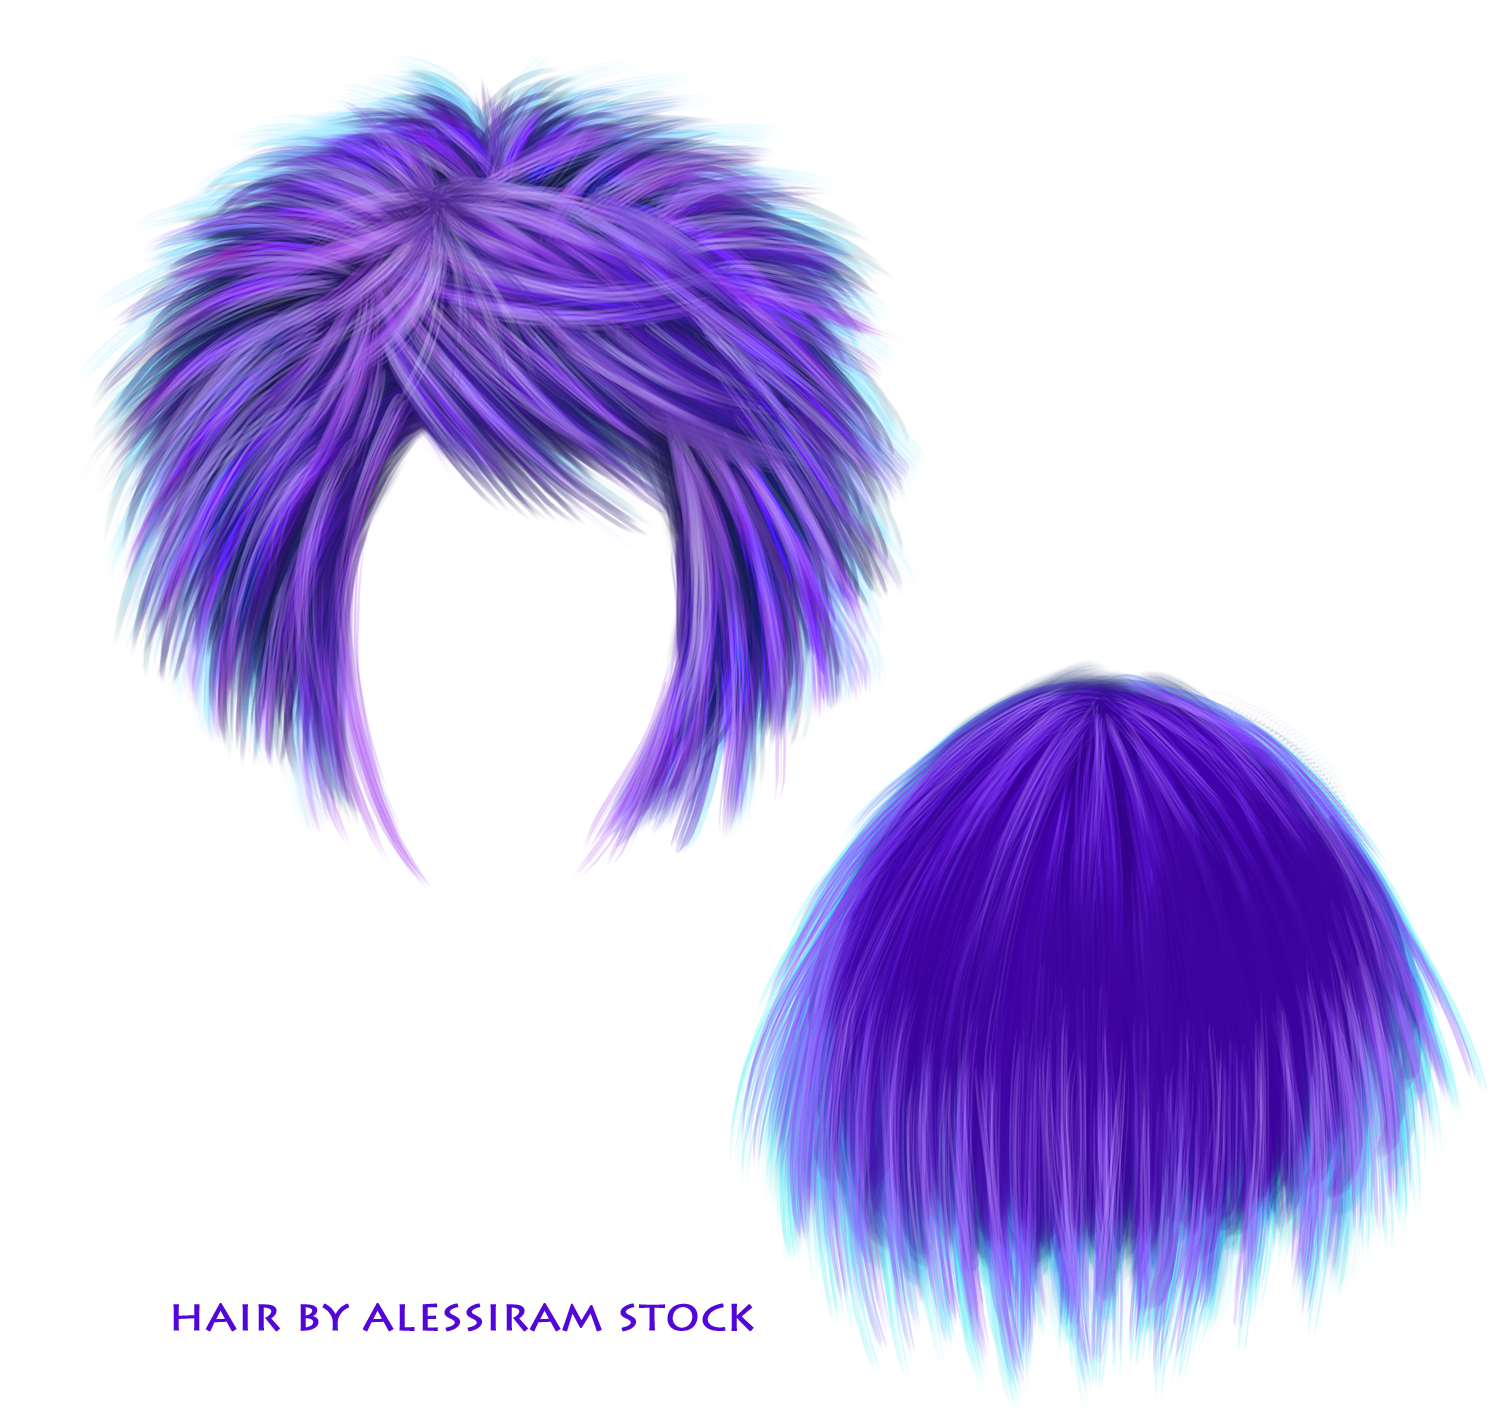 Mohawk vector spiky hair. Resources stock png by